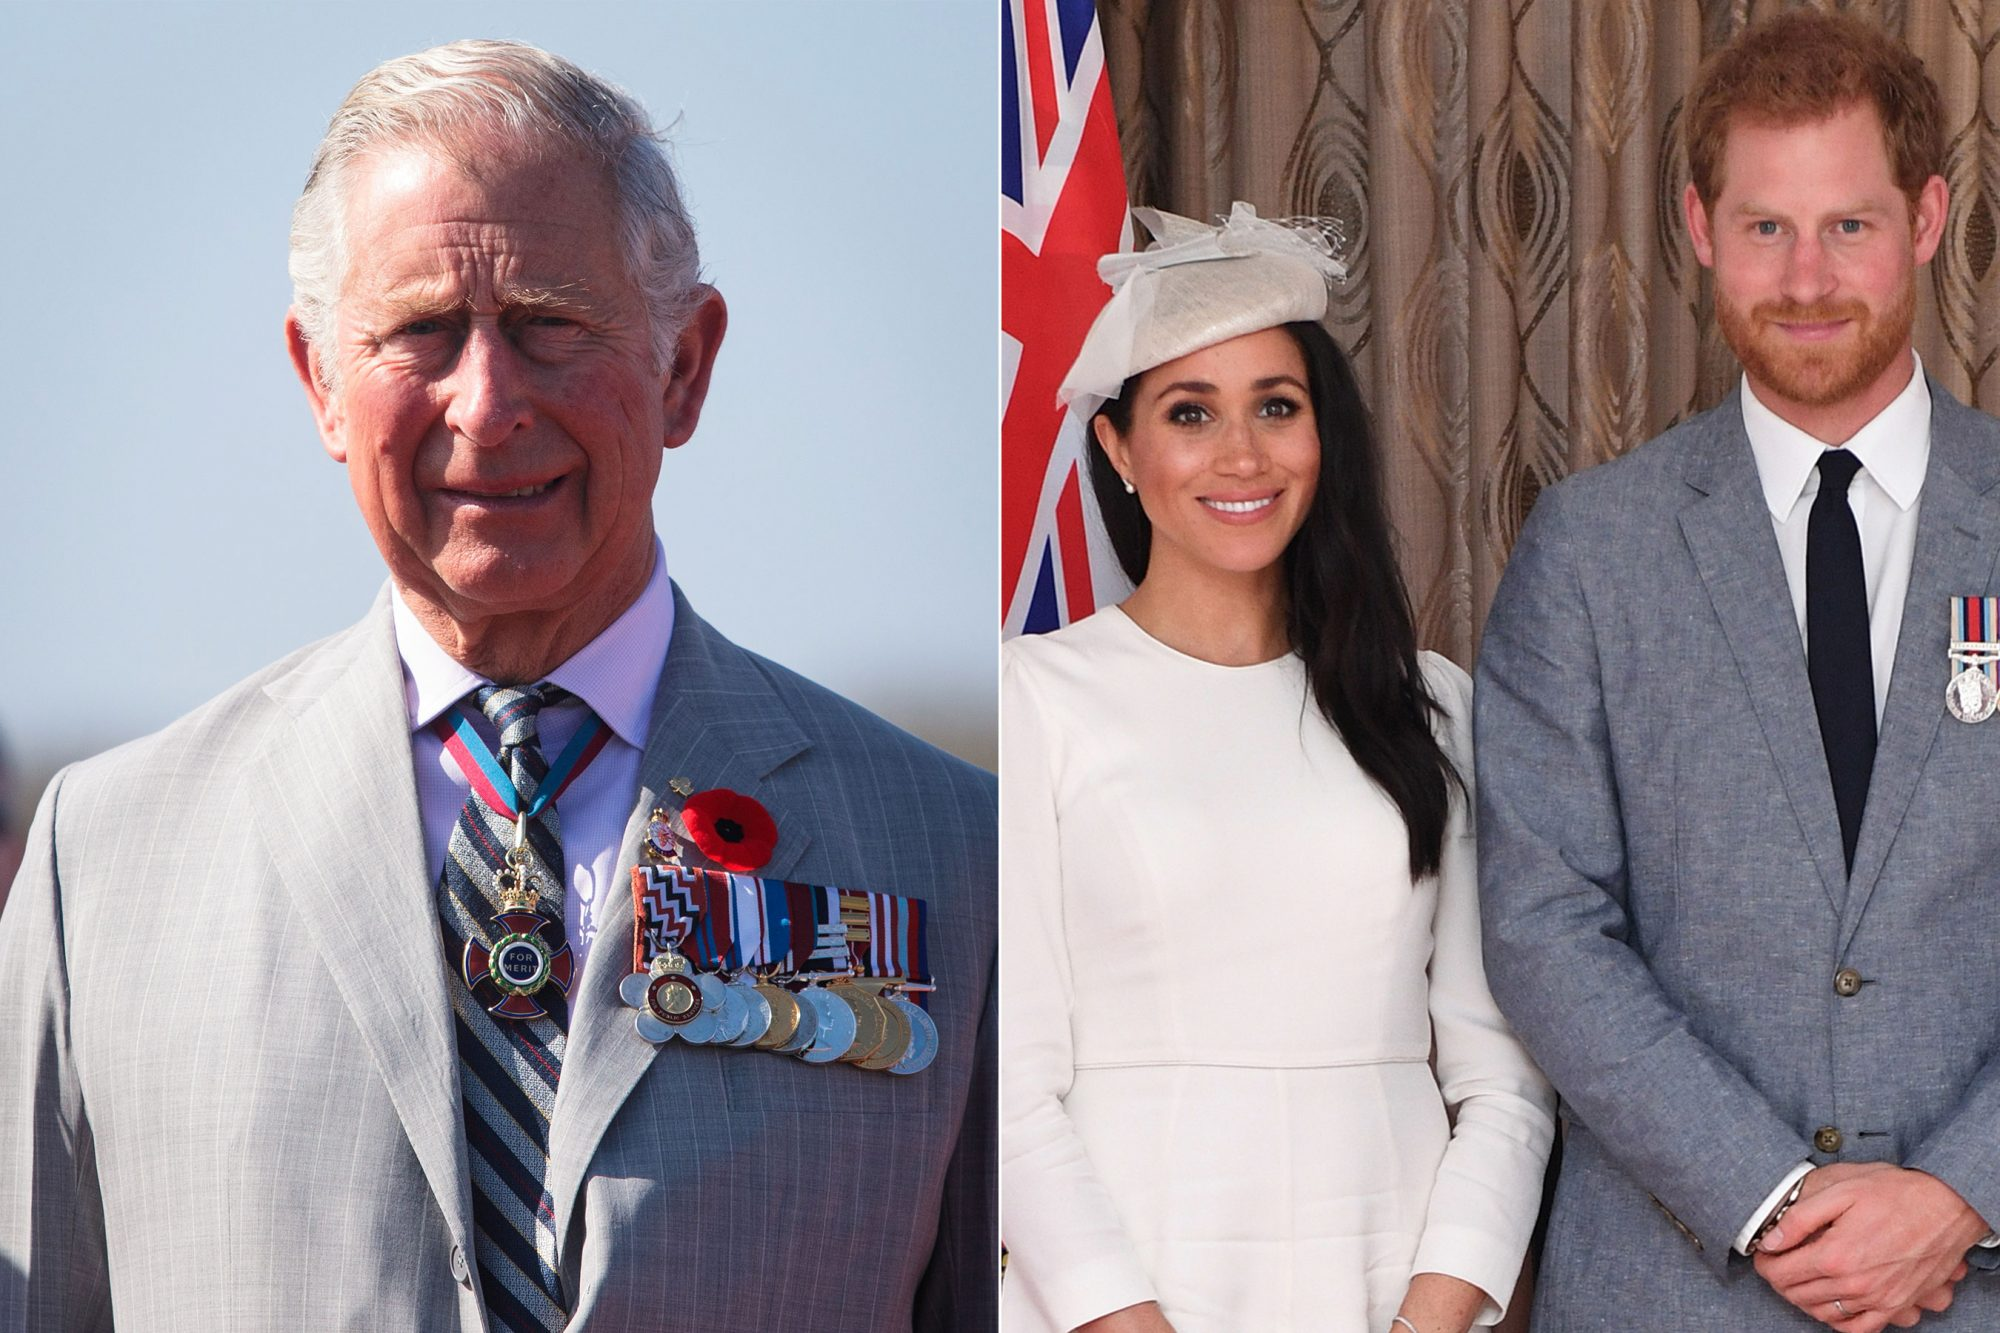 Prince Charles Reveals the Baby Names He Thinks Might Make Harry and Meghan Markle's Shortlist